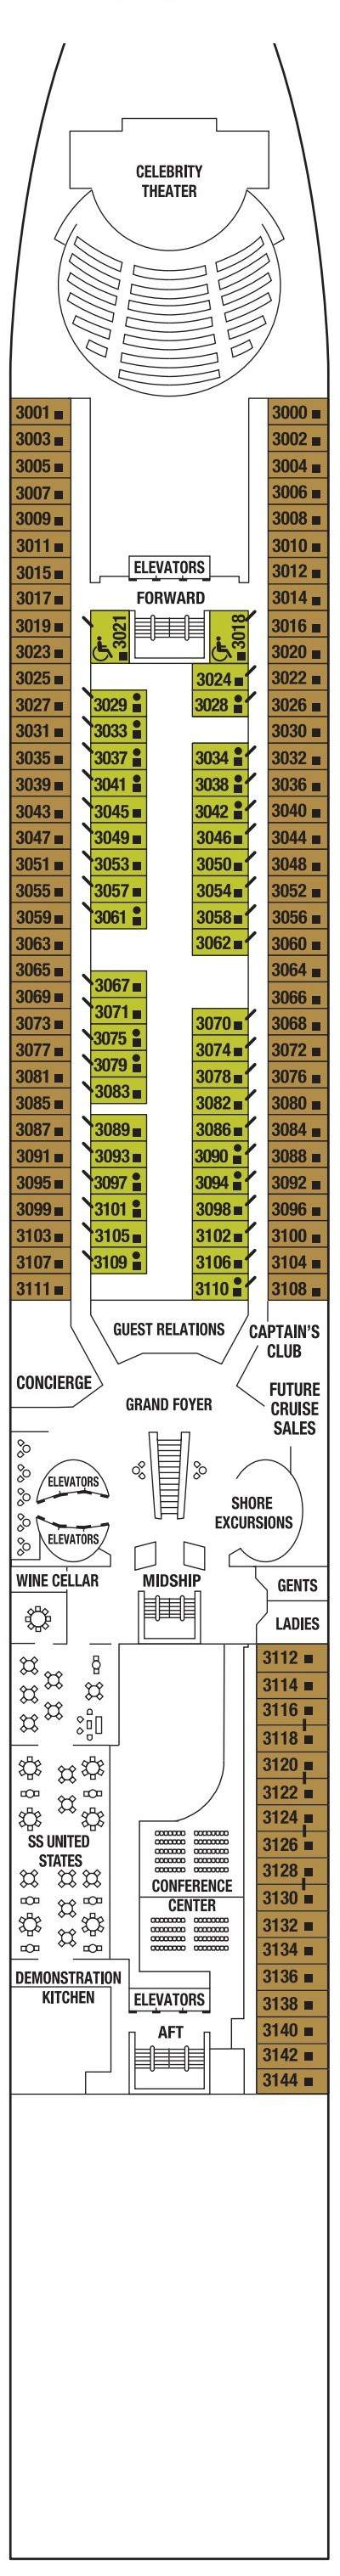 Celebrity Infinity Plaza Deck  layout